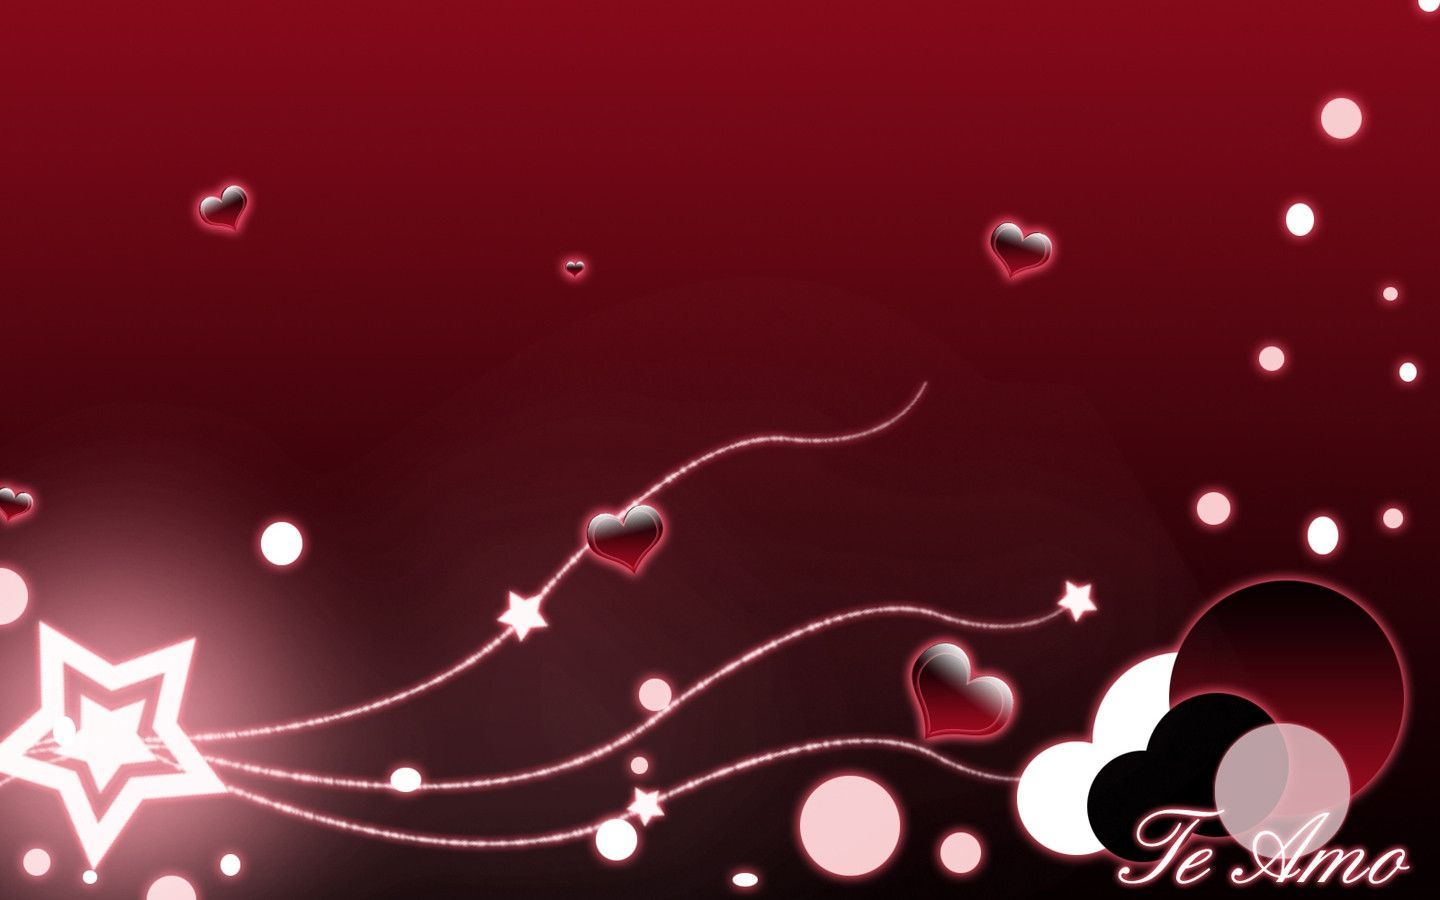 i love you wallpaper collection for free download | hd wallpapers